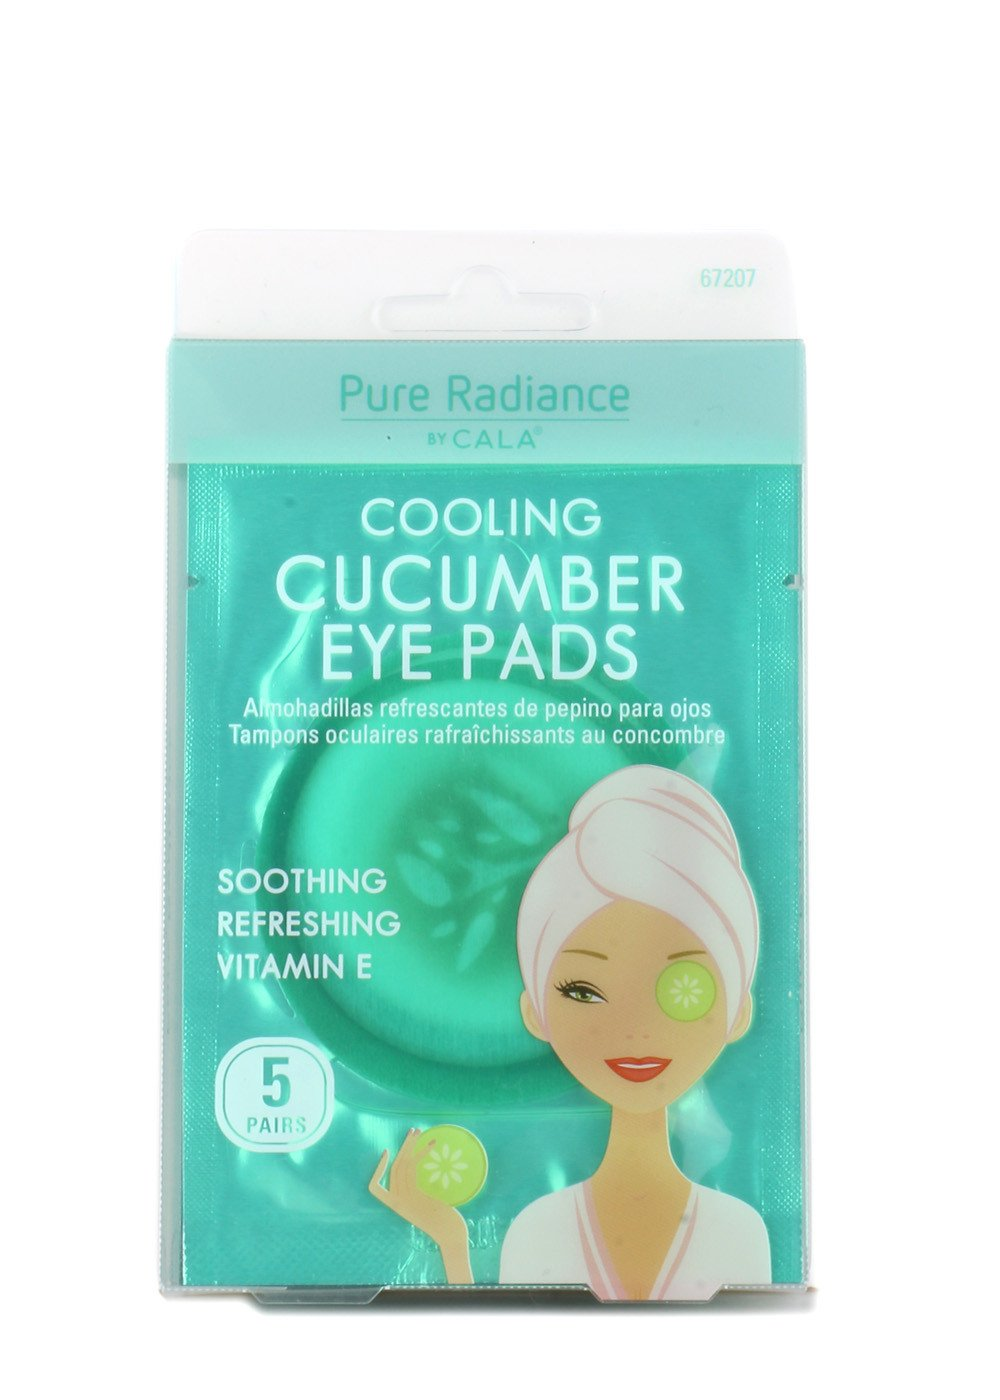 Cala Cooling cucumber eye pads 5 count, 5 Count